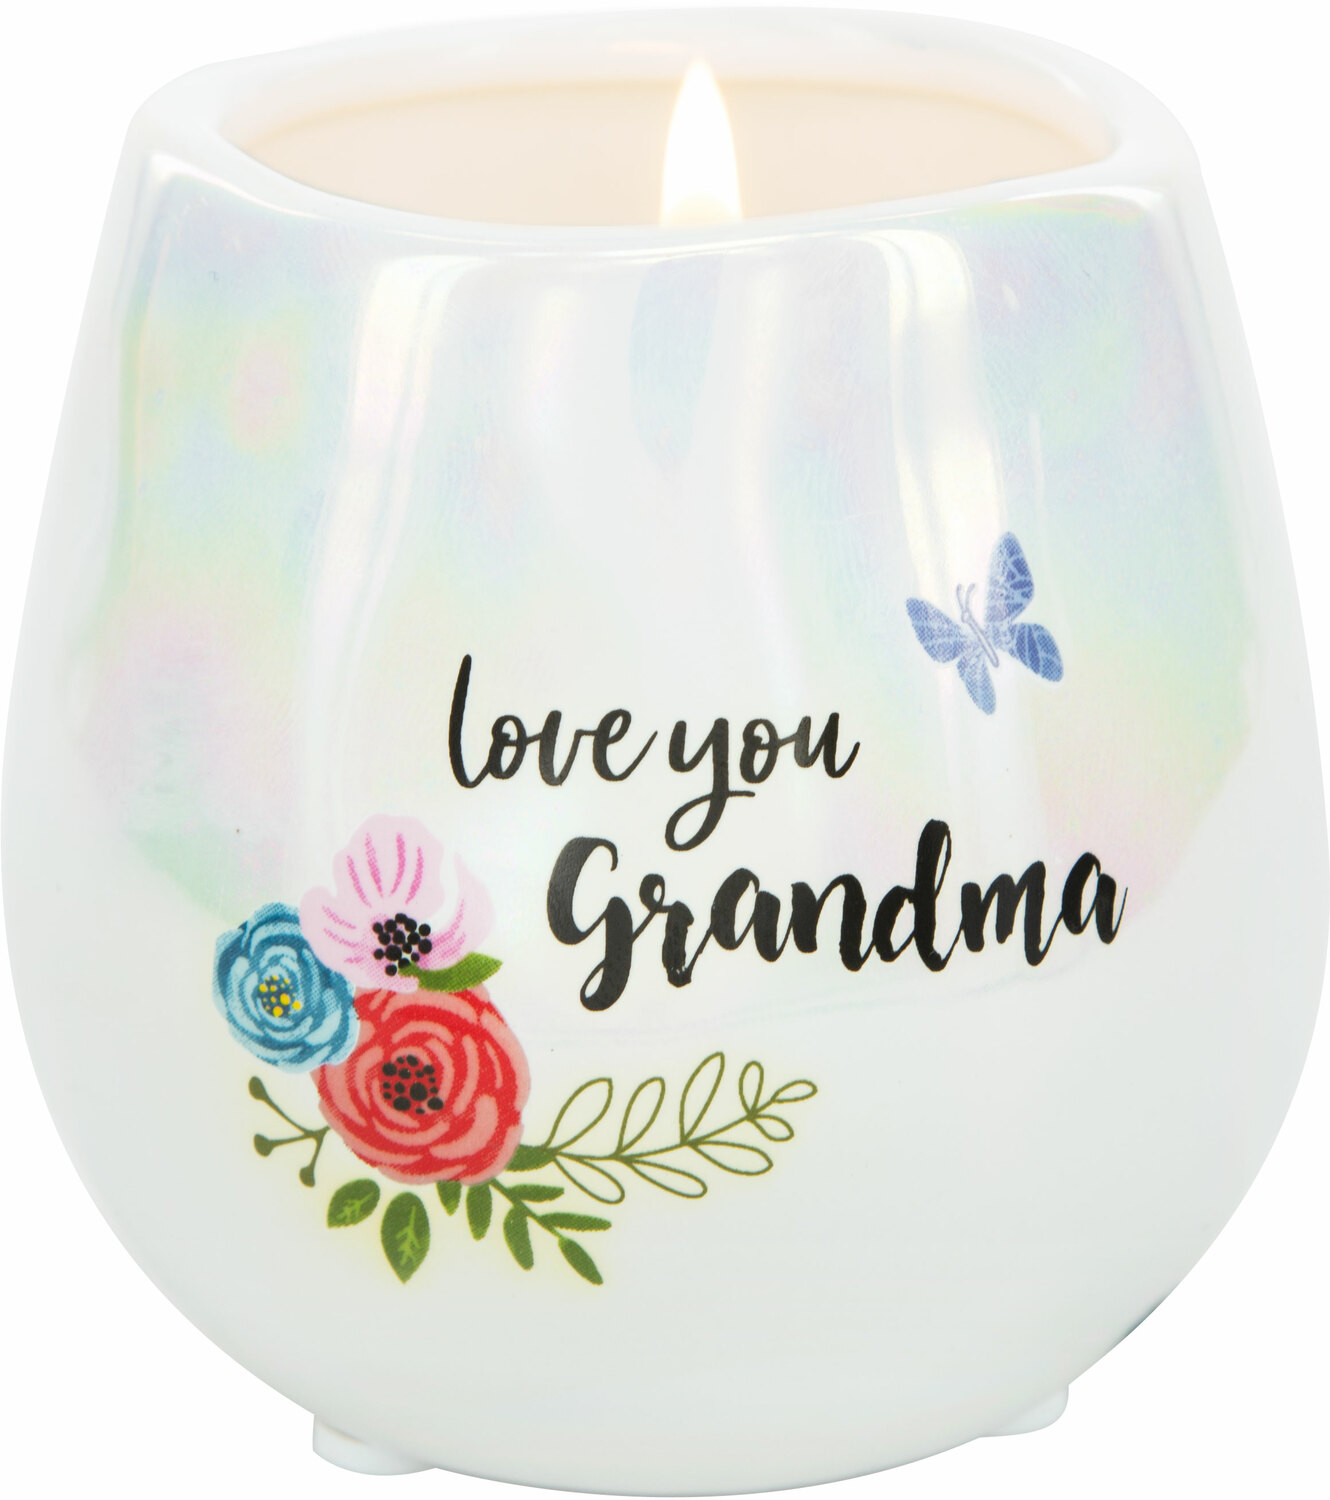 Grandma by Bunches of Love - Grandma - 8 oz - 100% Soy Wax Candle Scent: Serenity